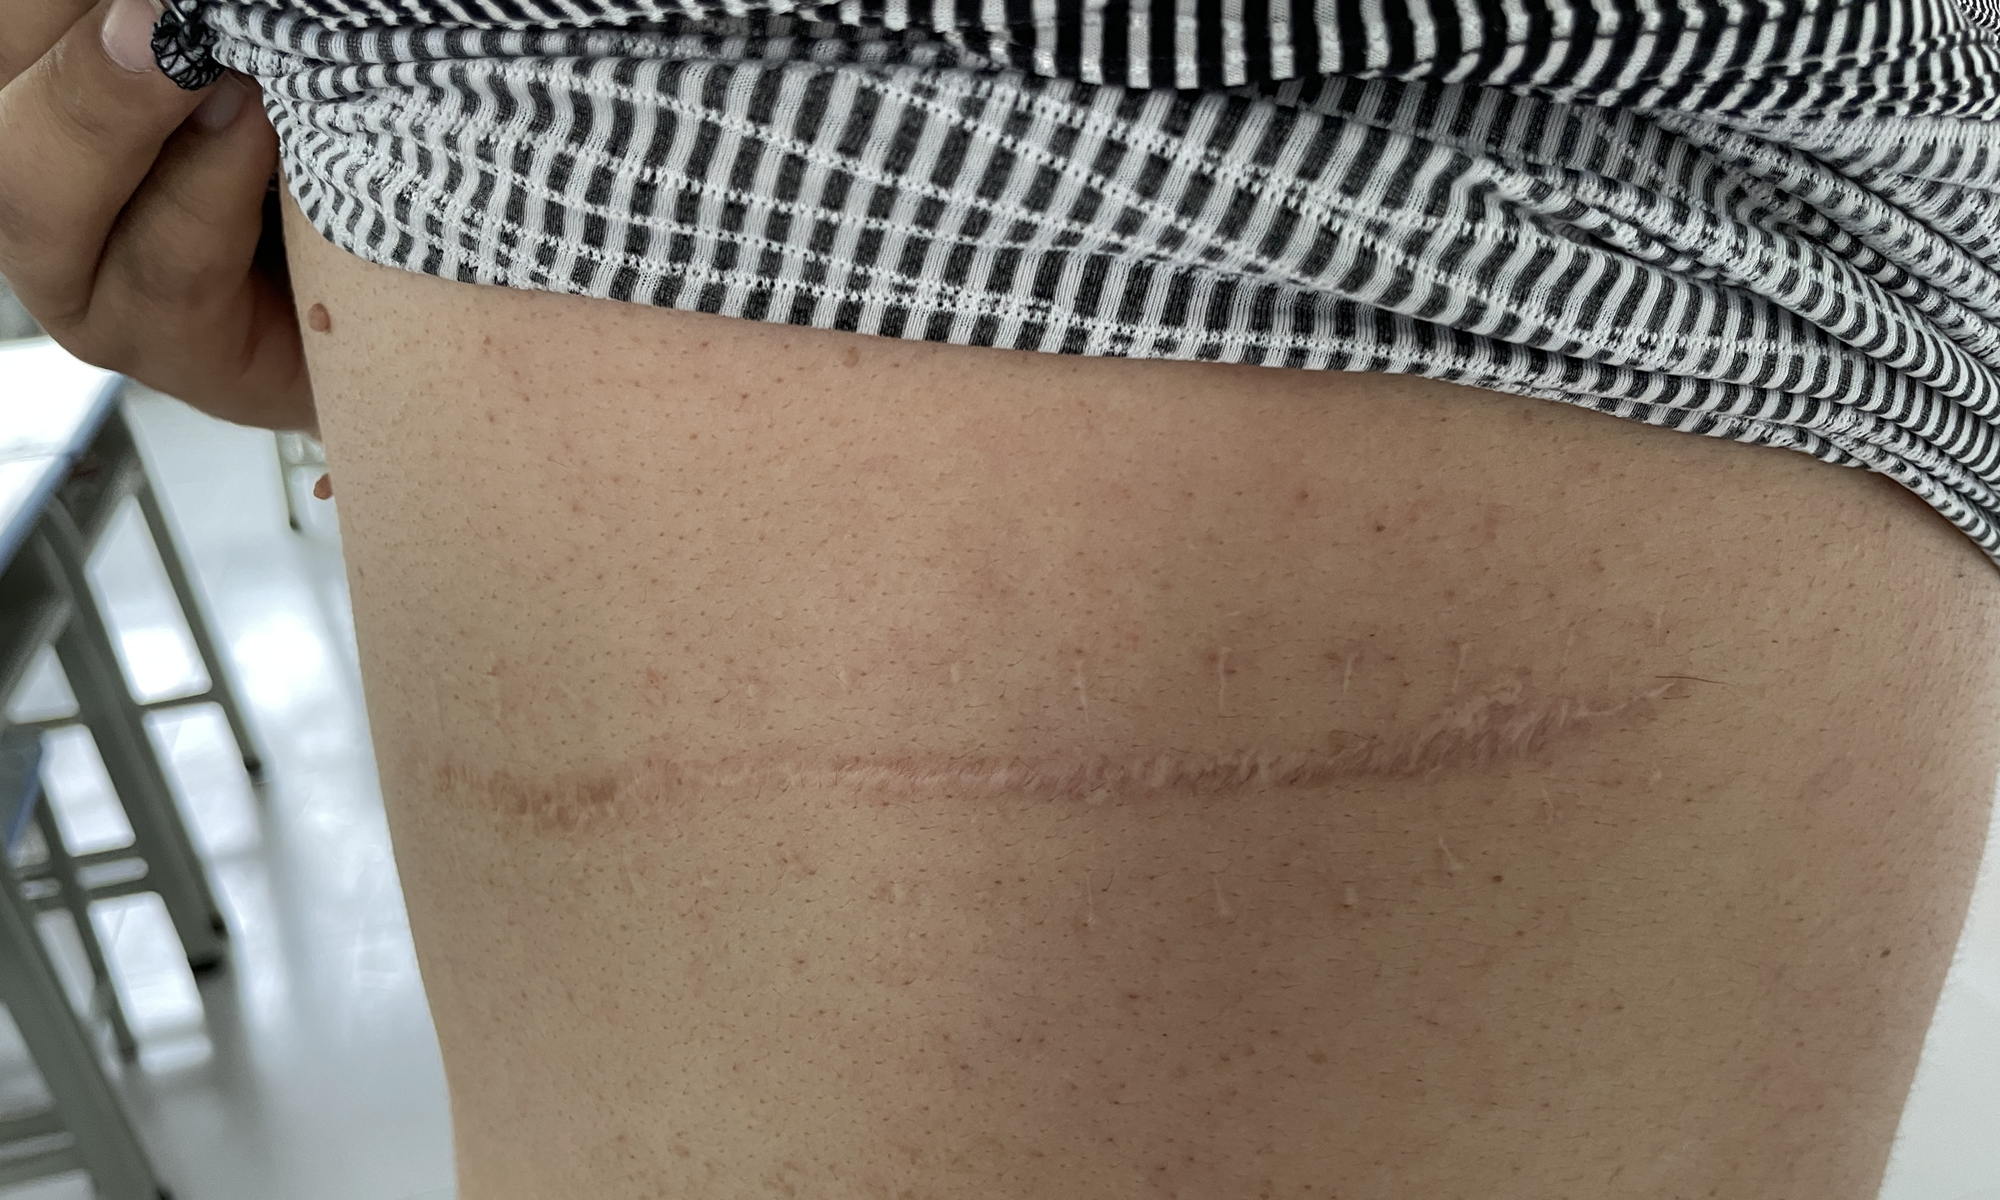 The scar left on Nurmemet back and ribs.